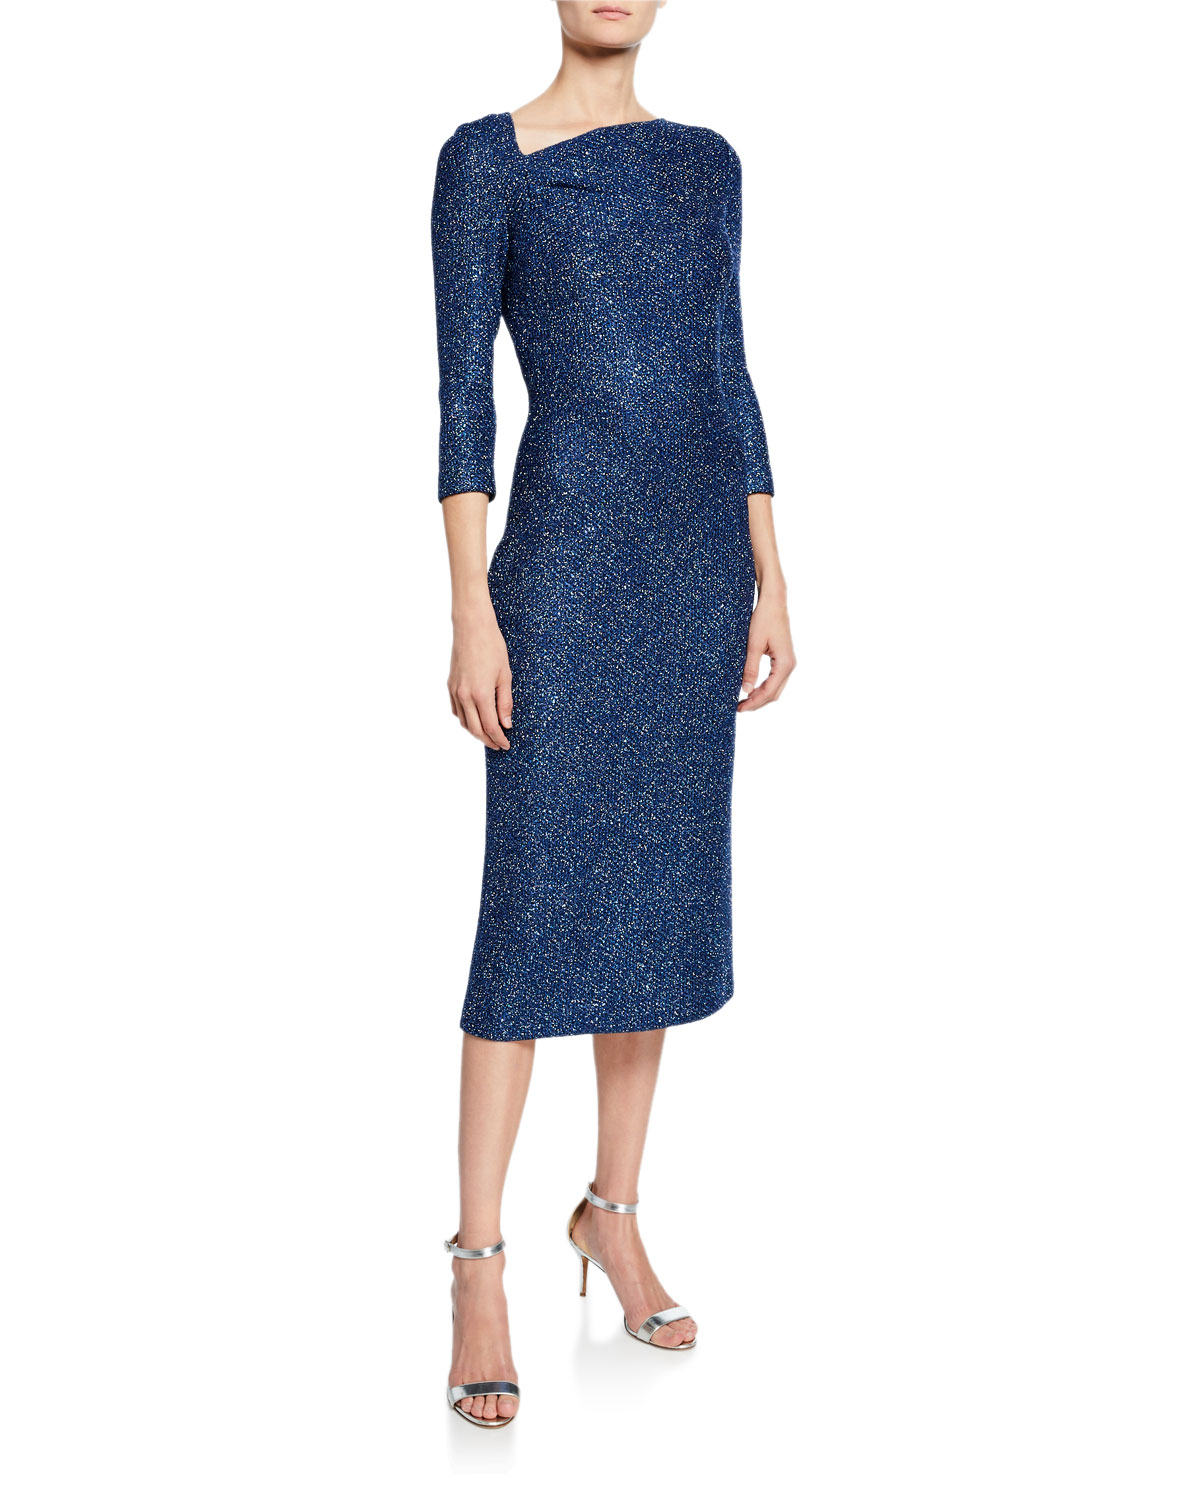 534b2babf44c St. John CollectionLuxe Sequin Asymmetric-Neck 3 4-Sleeve Tuck Knit Dress